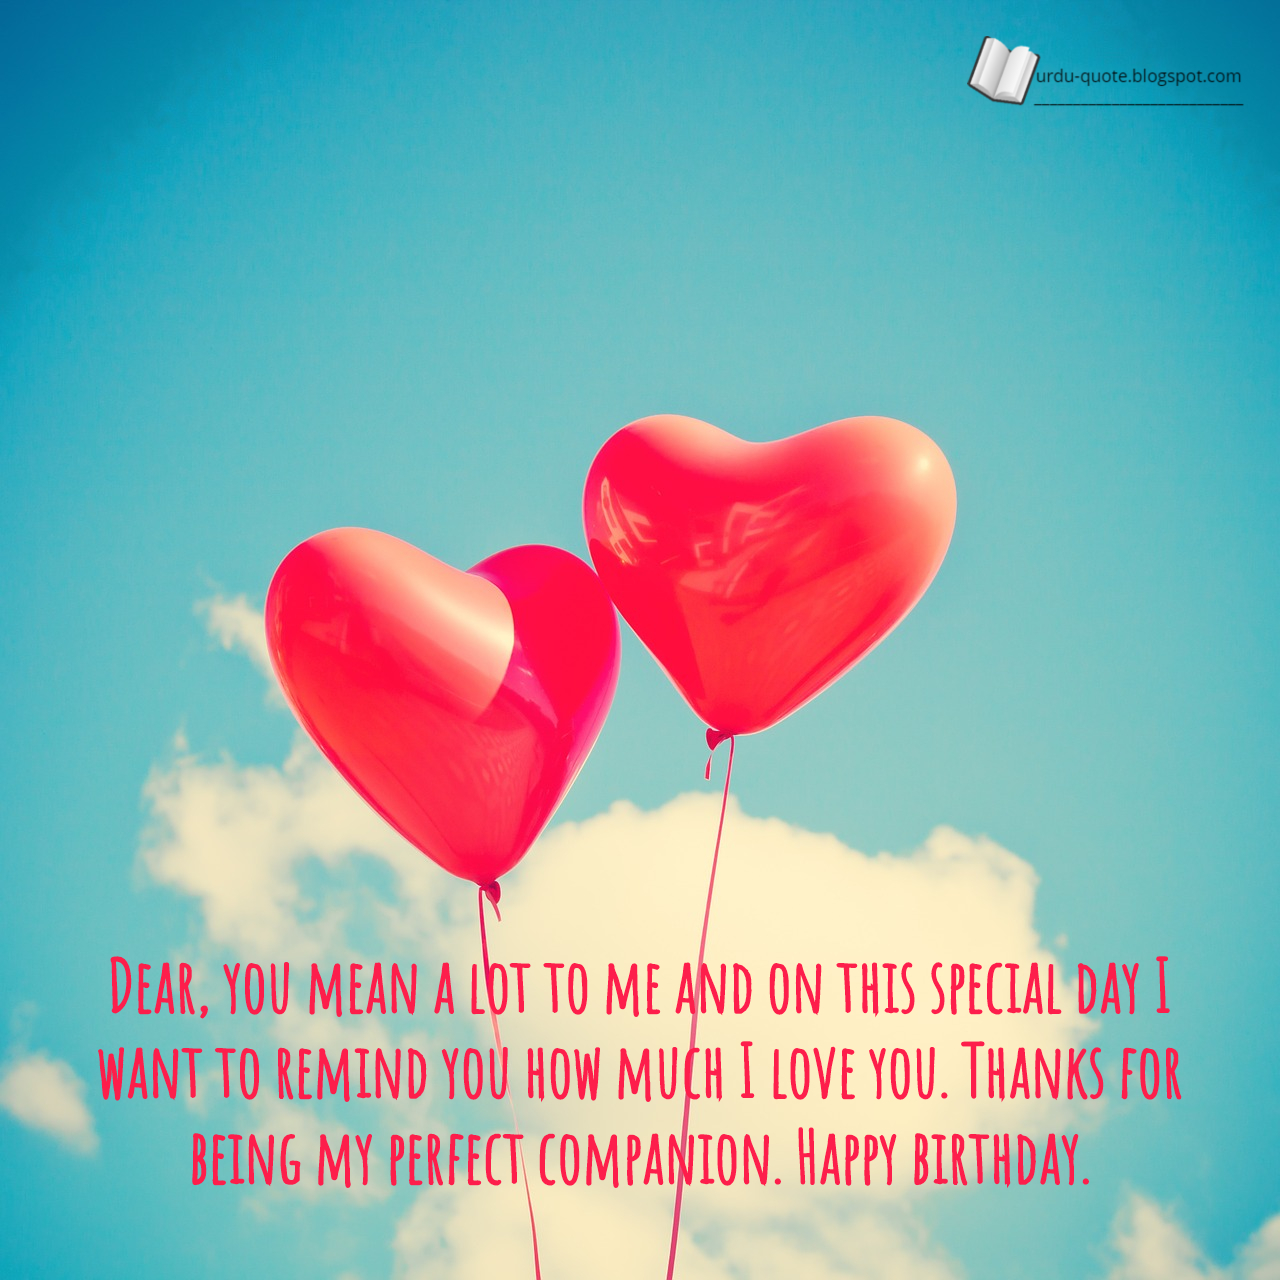 Pleasant Urdu Quotes Best Urdu Quotes Famous Urdu Quotes Birthday Personalised Birthday Cards Paralily Jamesorg